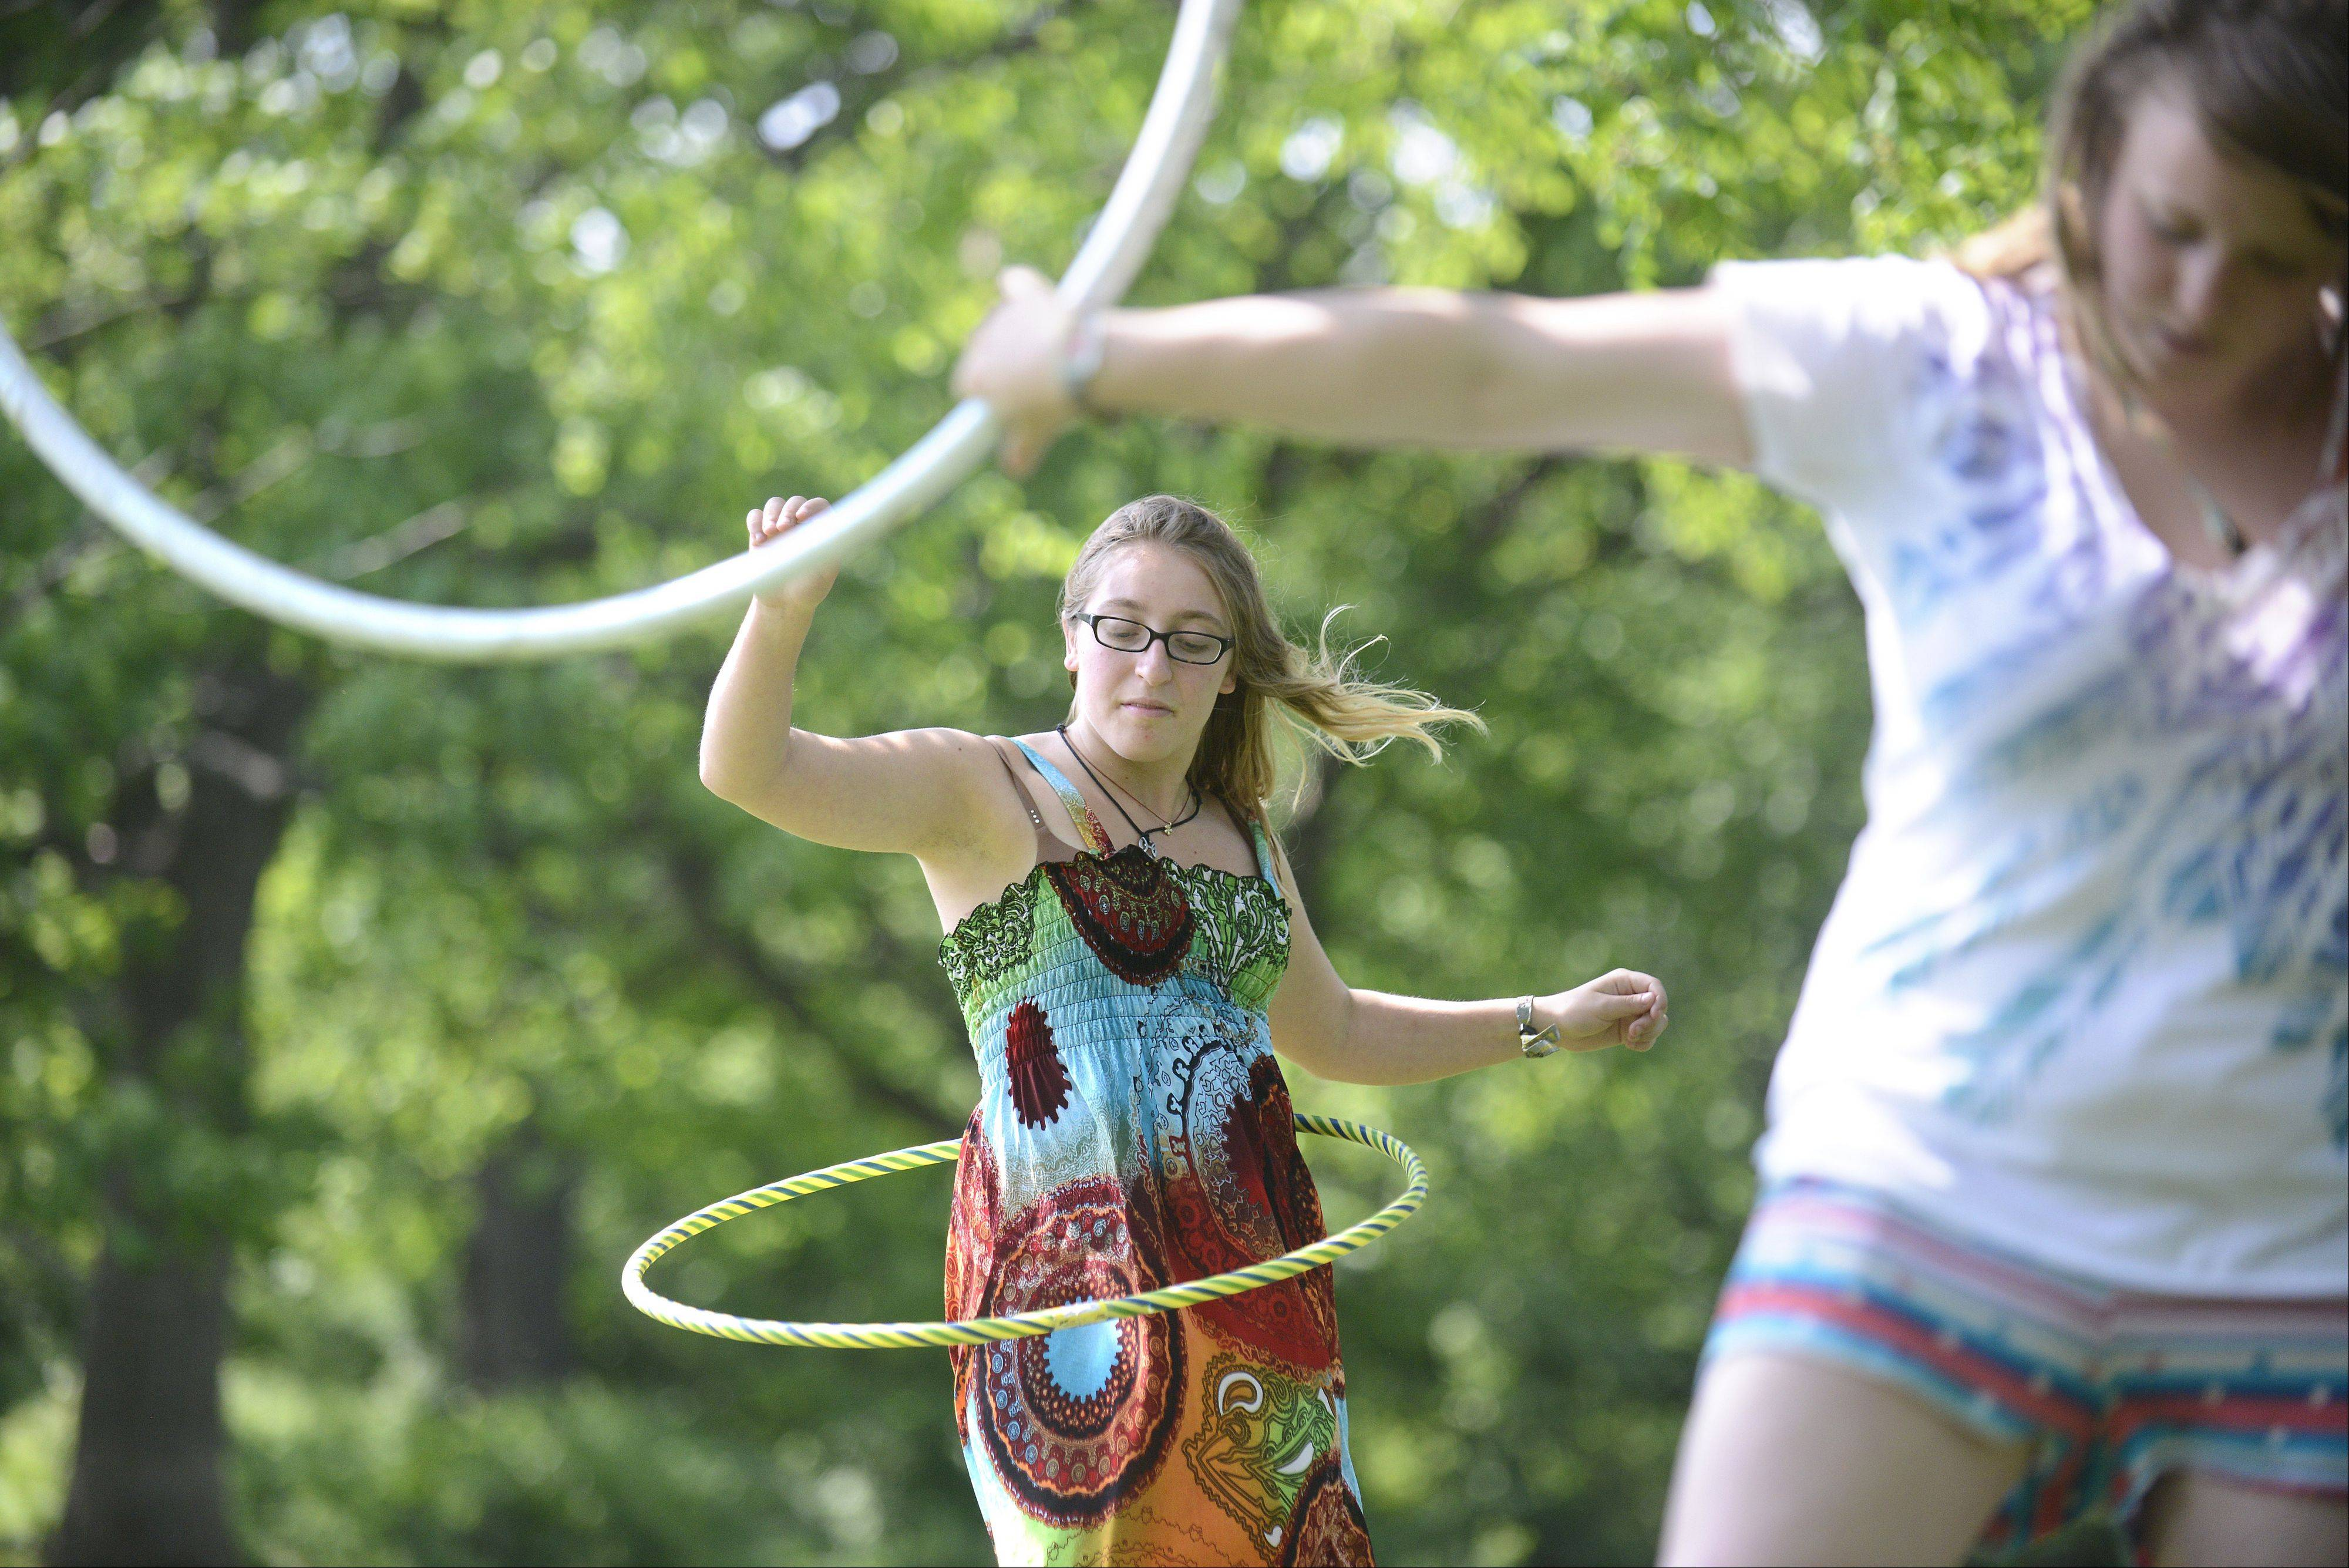 Holly Crowe, 20, of South Elgin, right and Julia Field, 18, of Batavia, hula hoop at LeRoy Oakes Forest Preserve in St. Charles Wednesday afternoon. Crowe has been hooping every day for the past two years. She recently returned from the Chillicothe Music Festival in Chillicothe, Il, where she performed. College students recently out for the summer, Crowe and Field were simply enjoying the day at LeRoy Oakes.